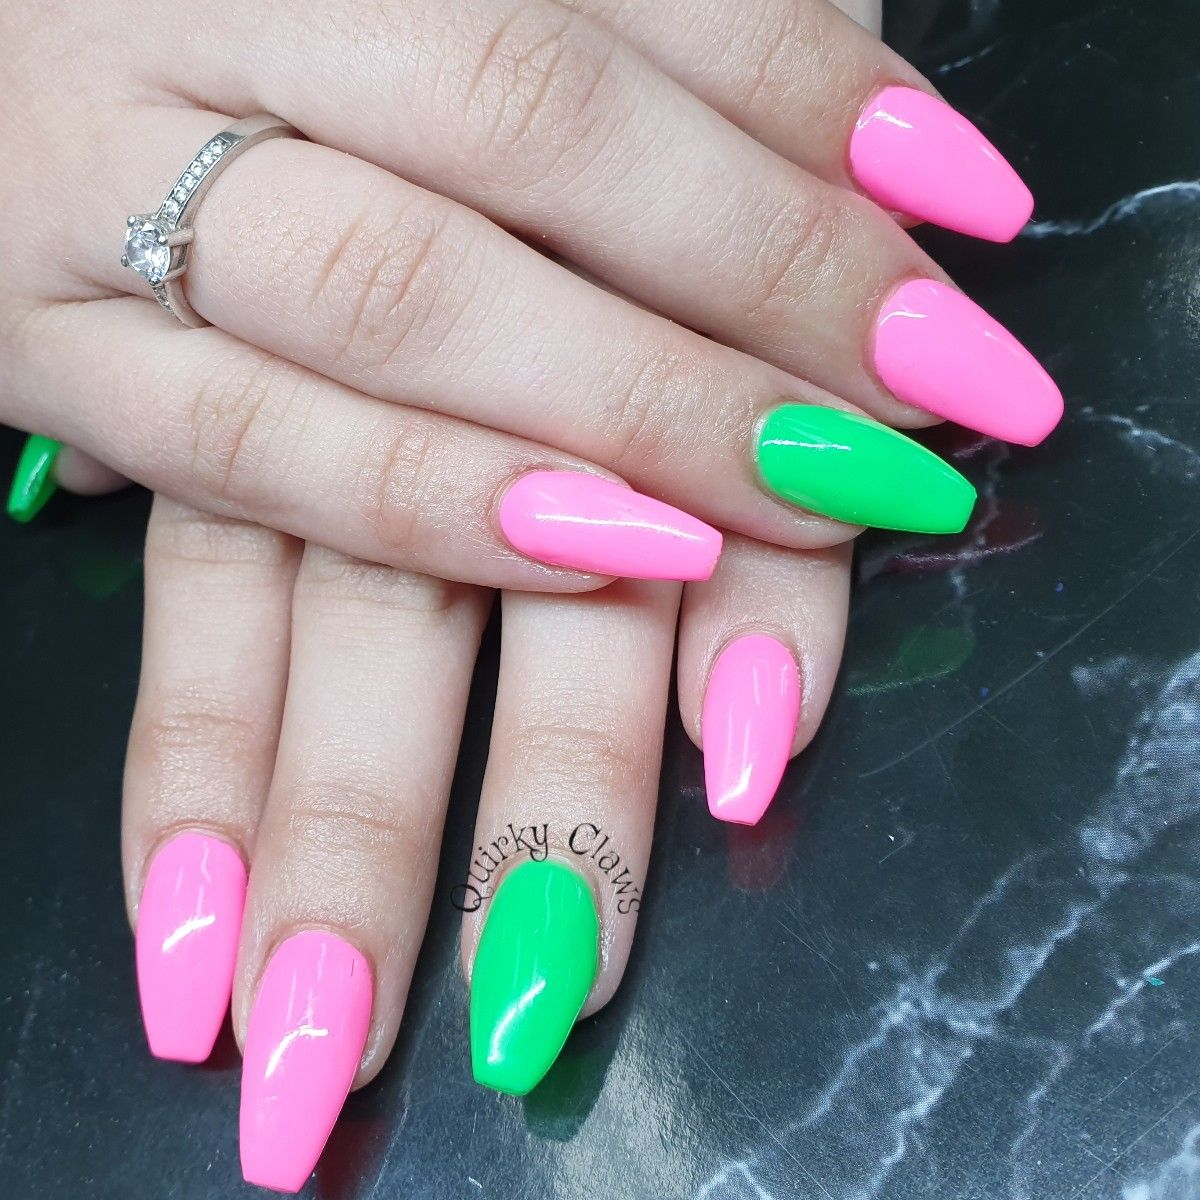 Pin By Brittanyy Wolf On Makeup In 2020 Green Nail Designs Neon